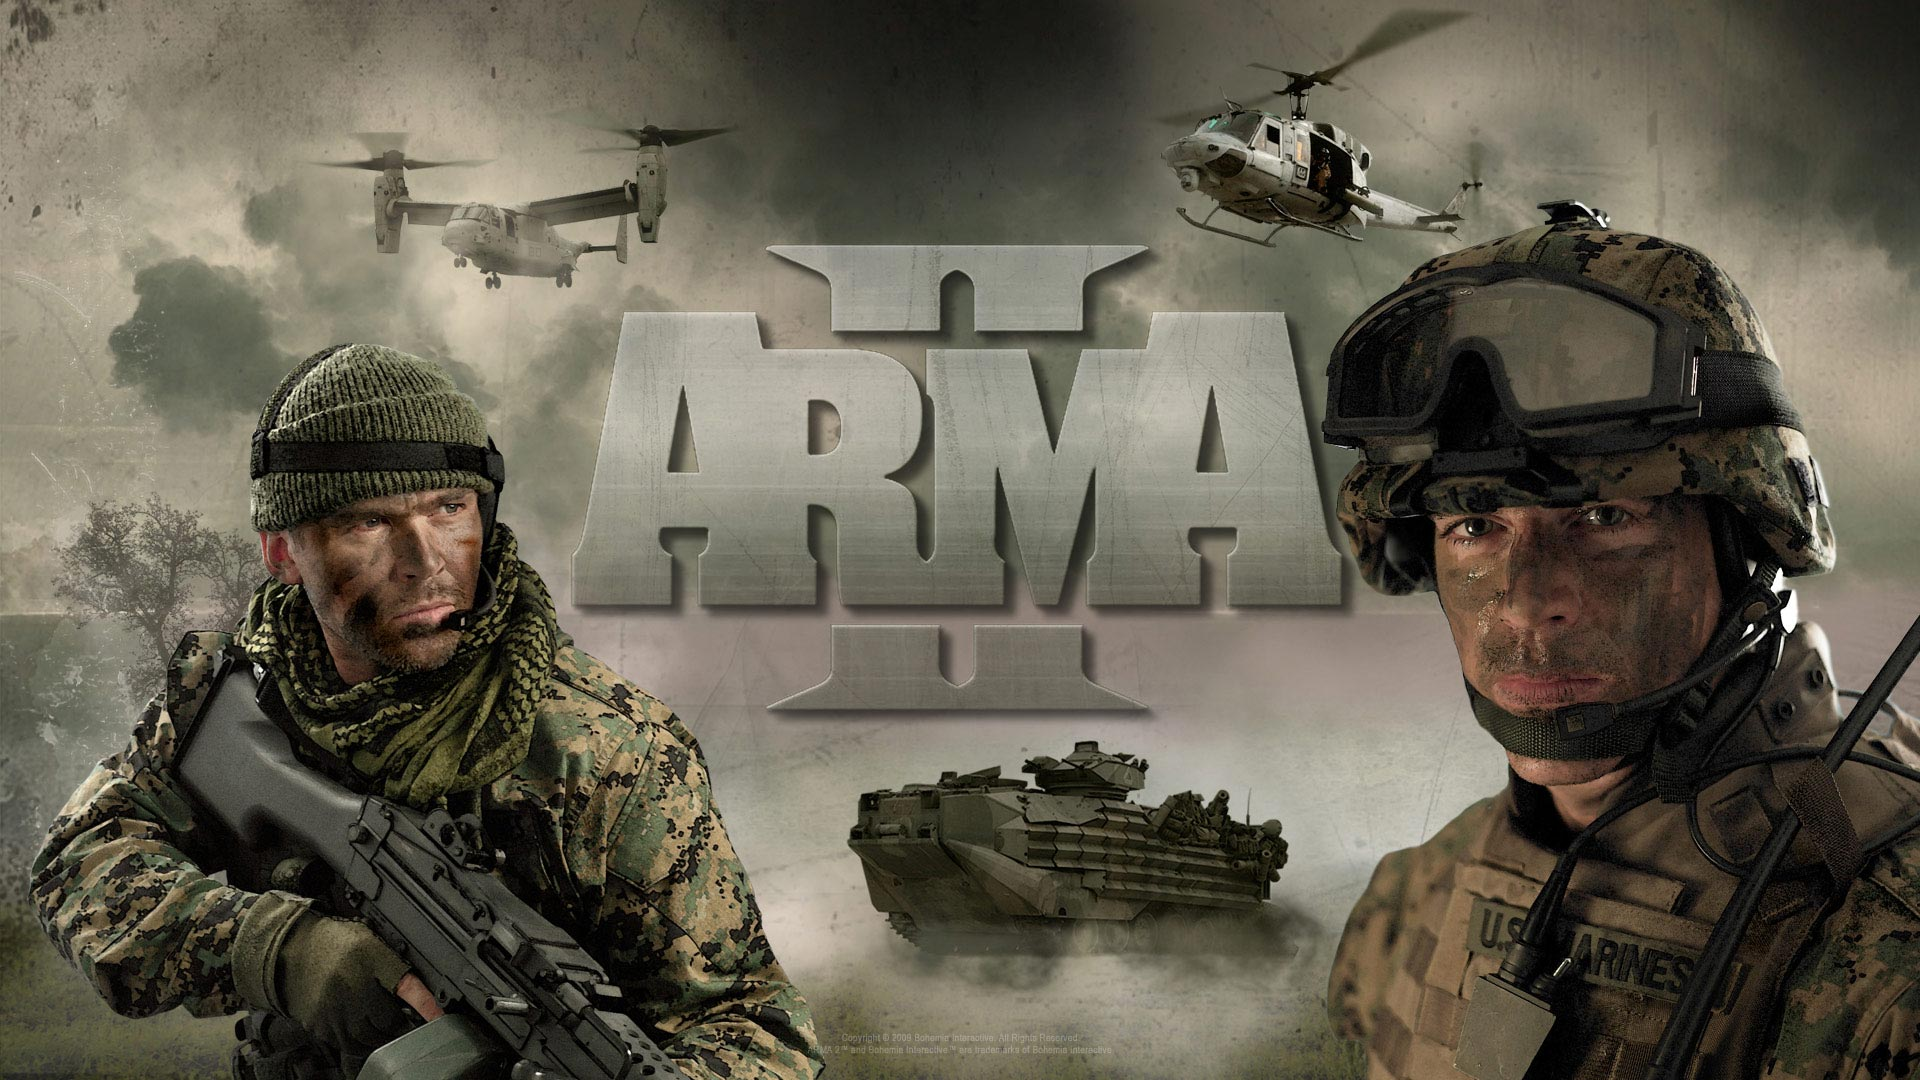 arma 3 clipart 1920x1080 20 free Cliparts | Download images